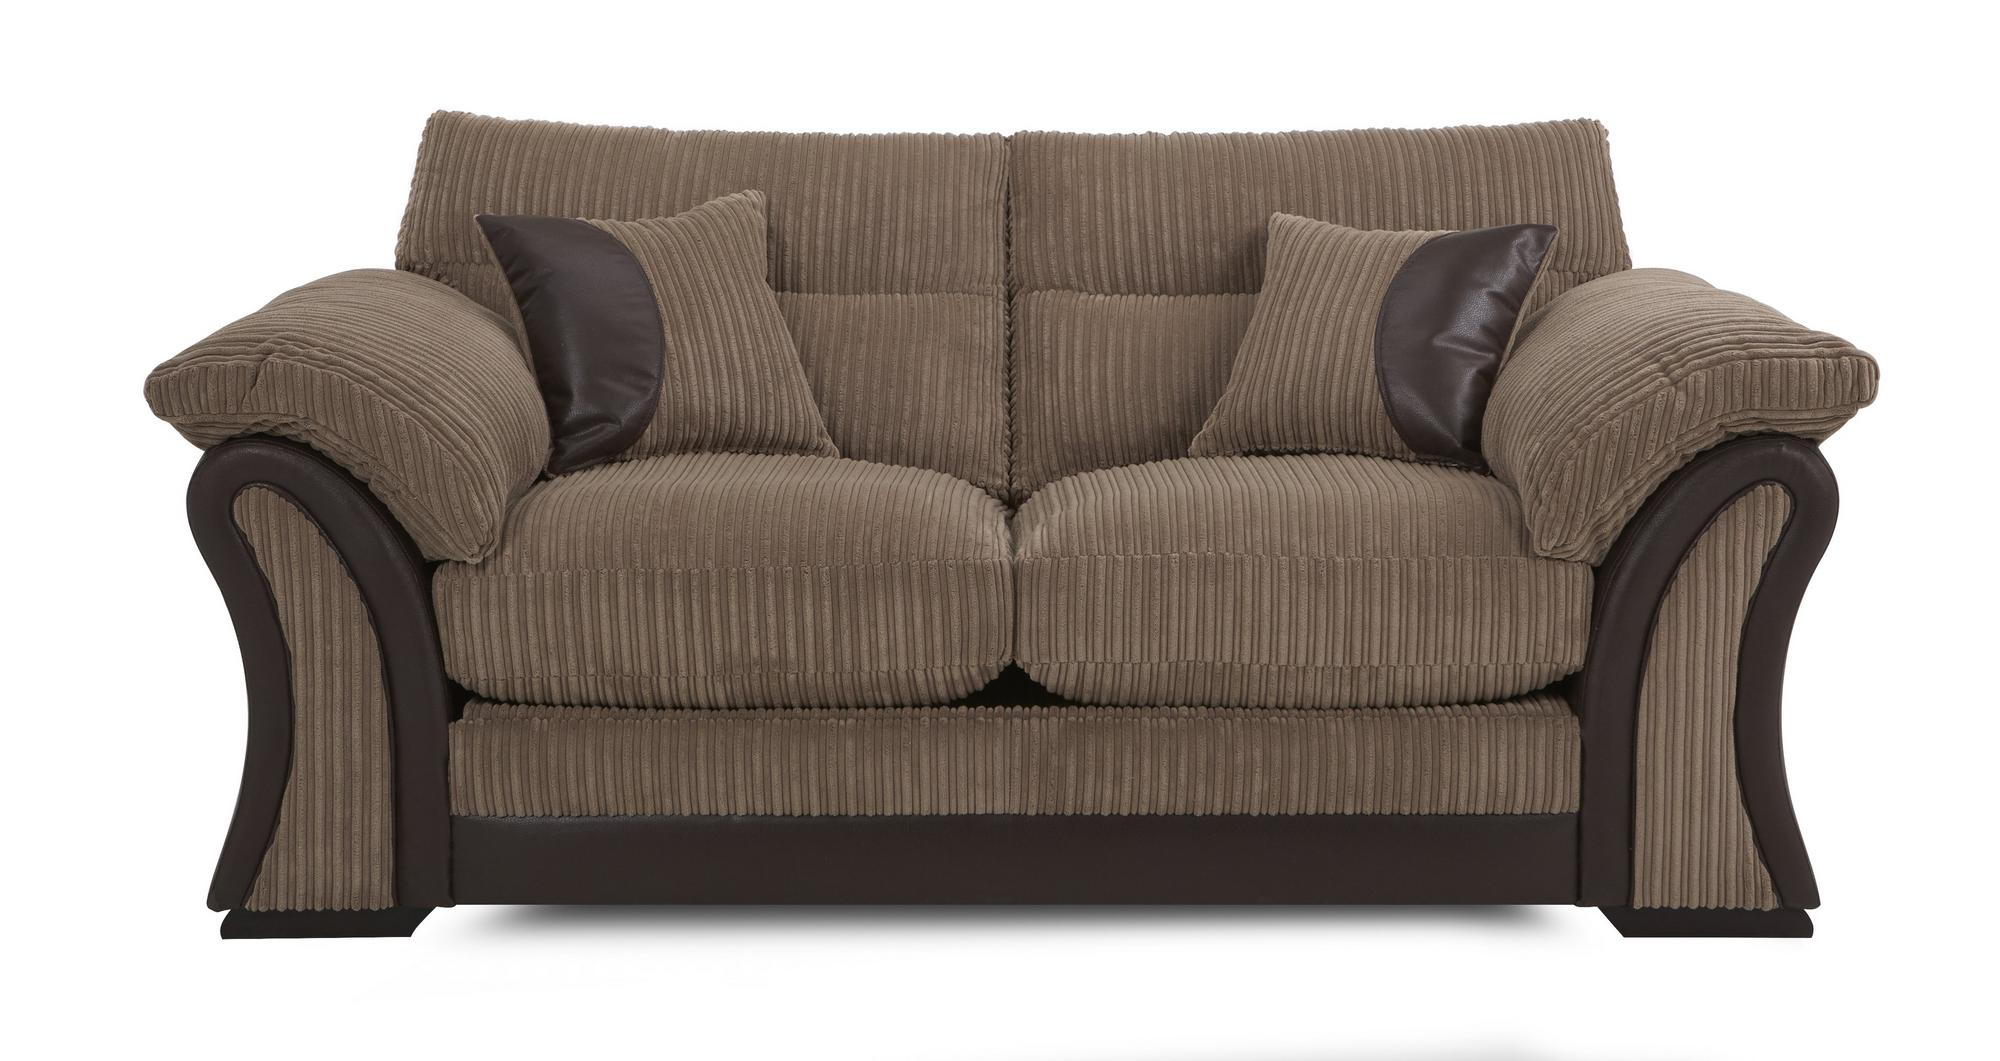 2 seater sofa beds dfs decor to go with brown walton nutmeg fabric large bed and storage